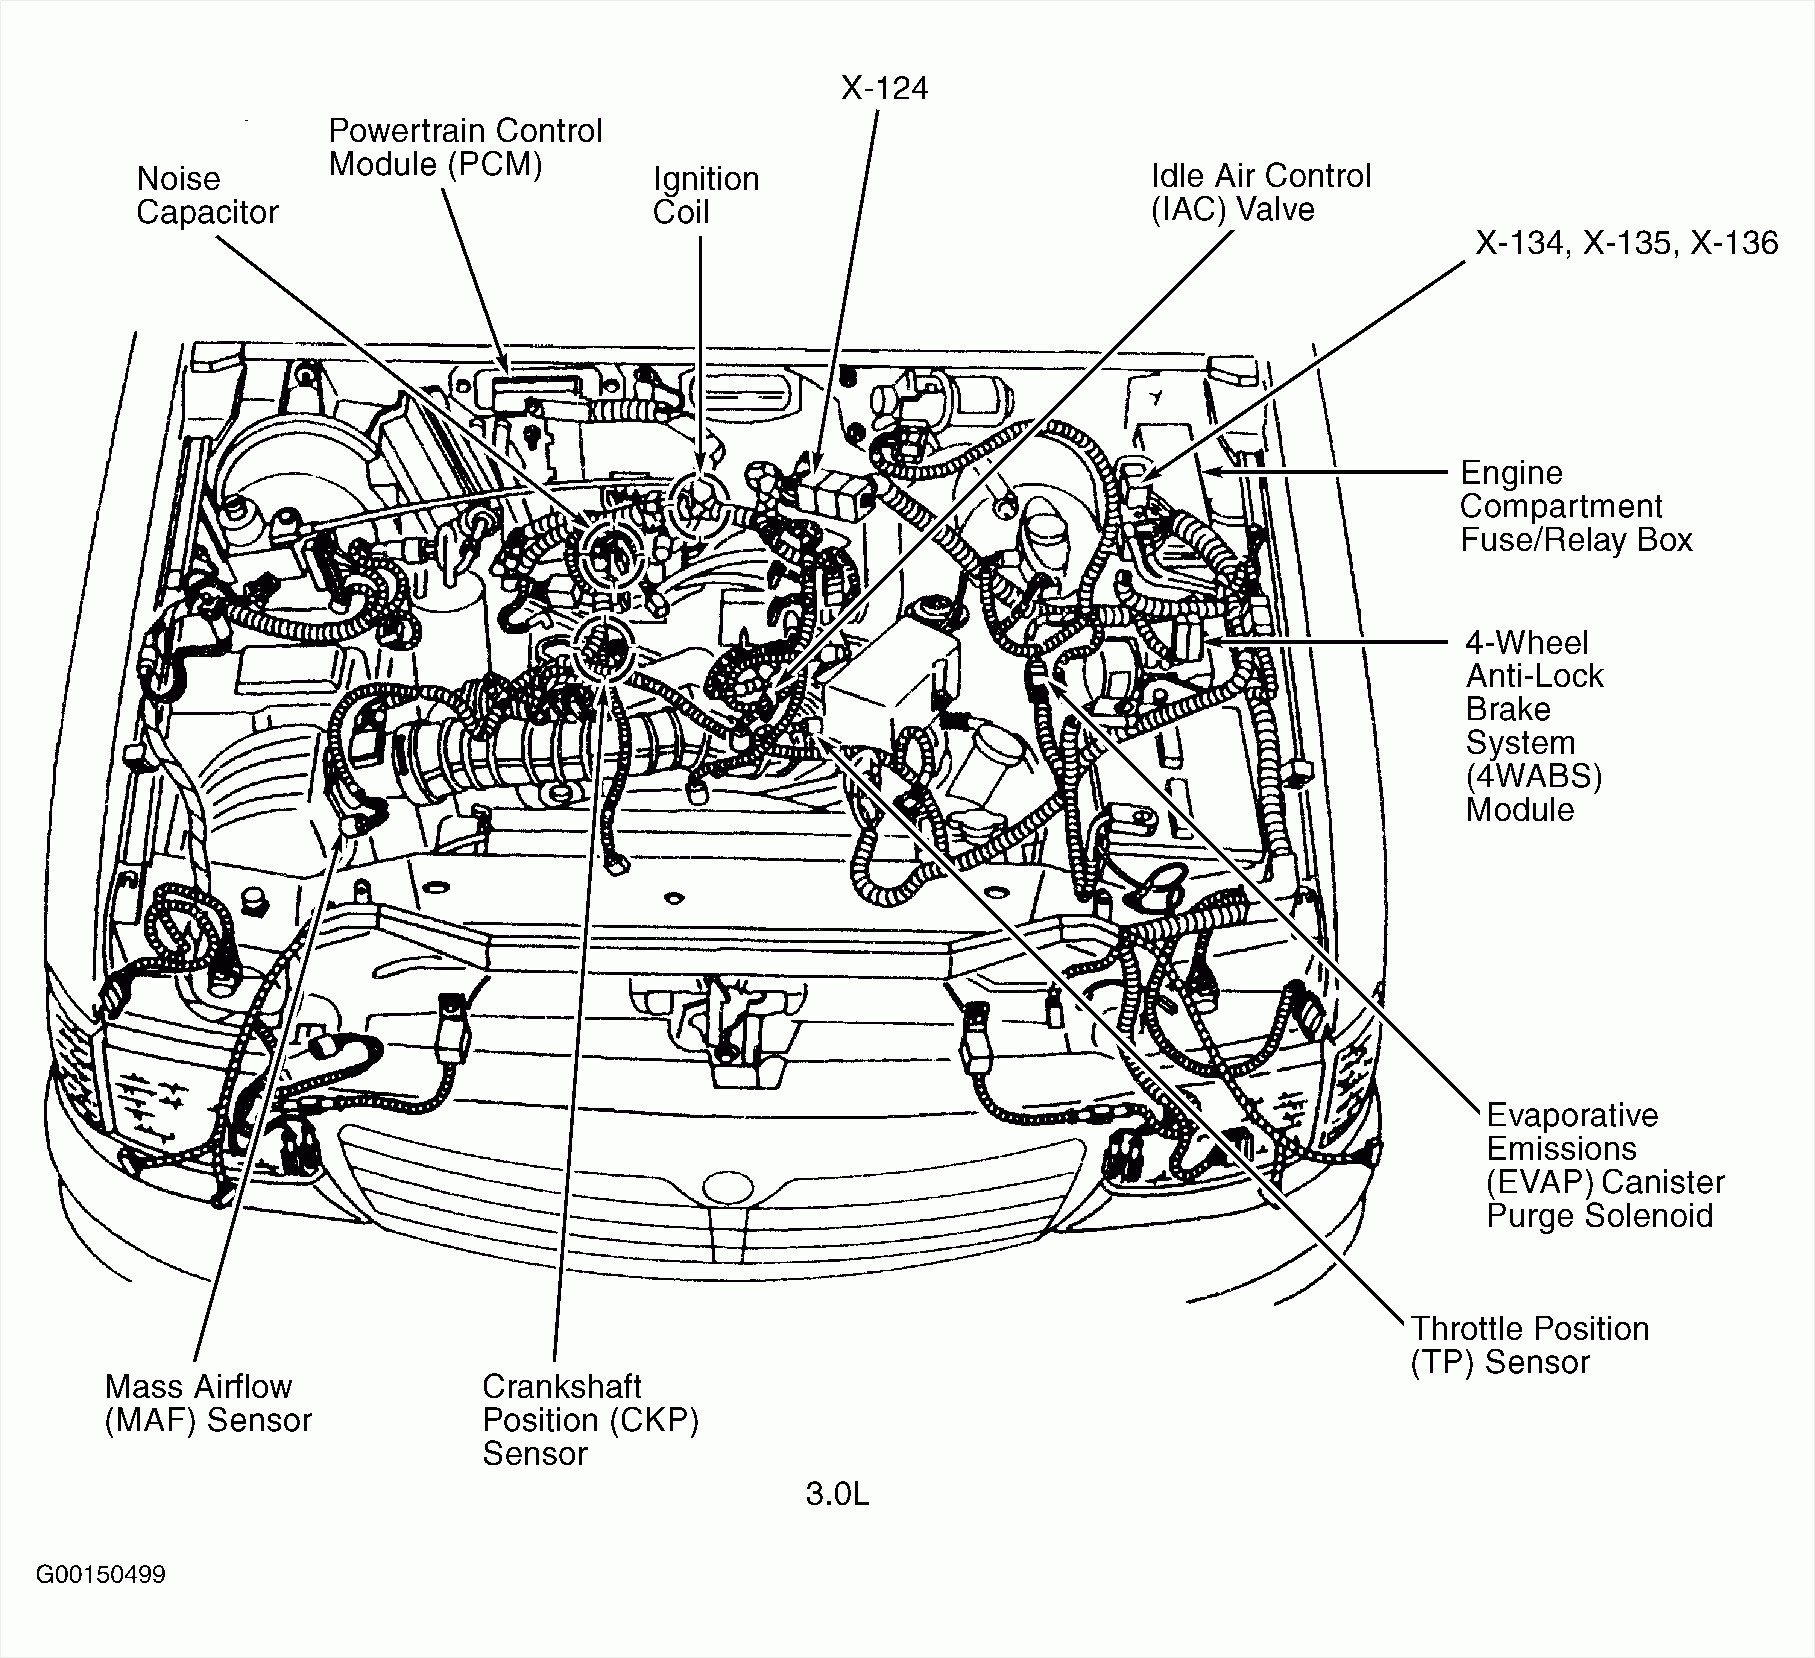 jetta fuse diagram group picture image by tag keywordpicturescom geo tracker engine diagram group picture image by tag wiring jetta fuse diagram group picture image by tag keywordpicturescom source leo e47